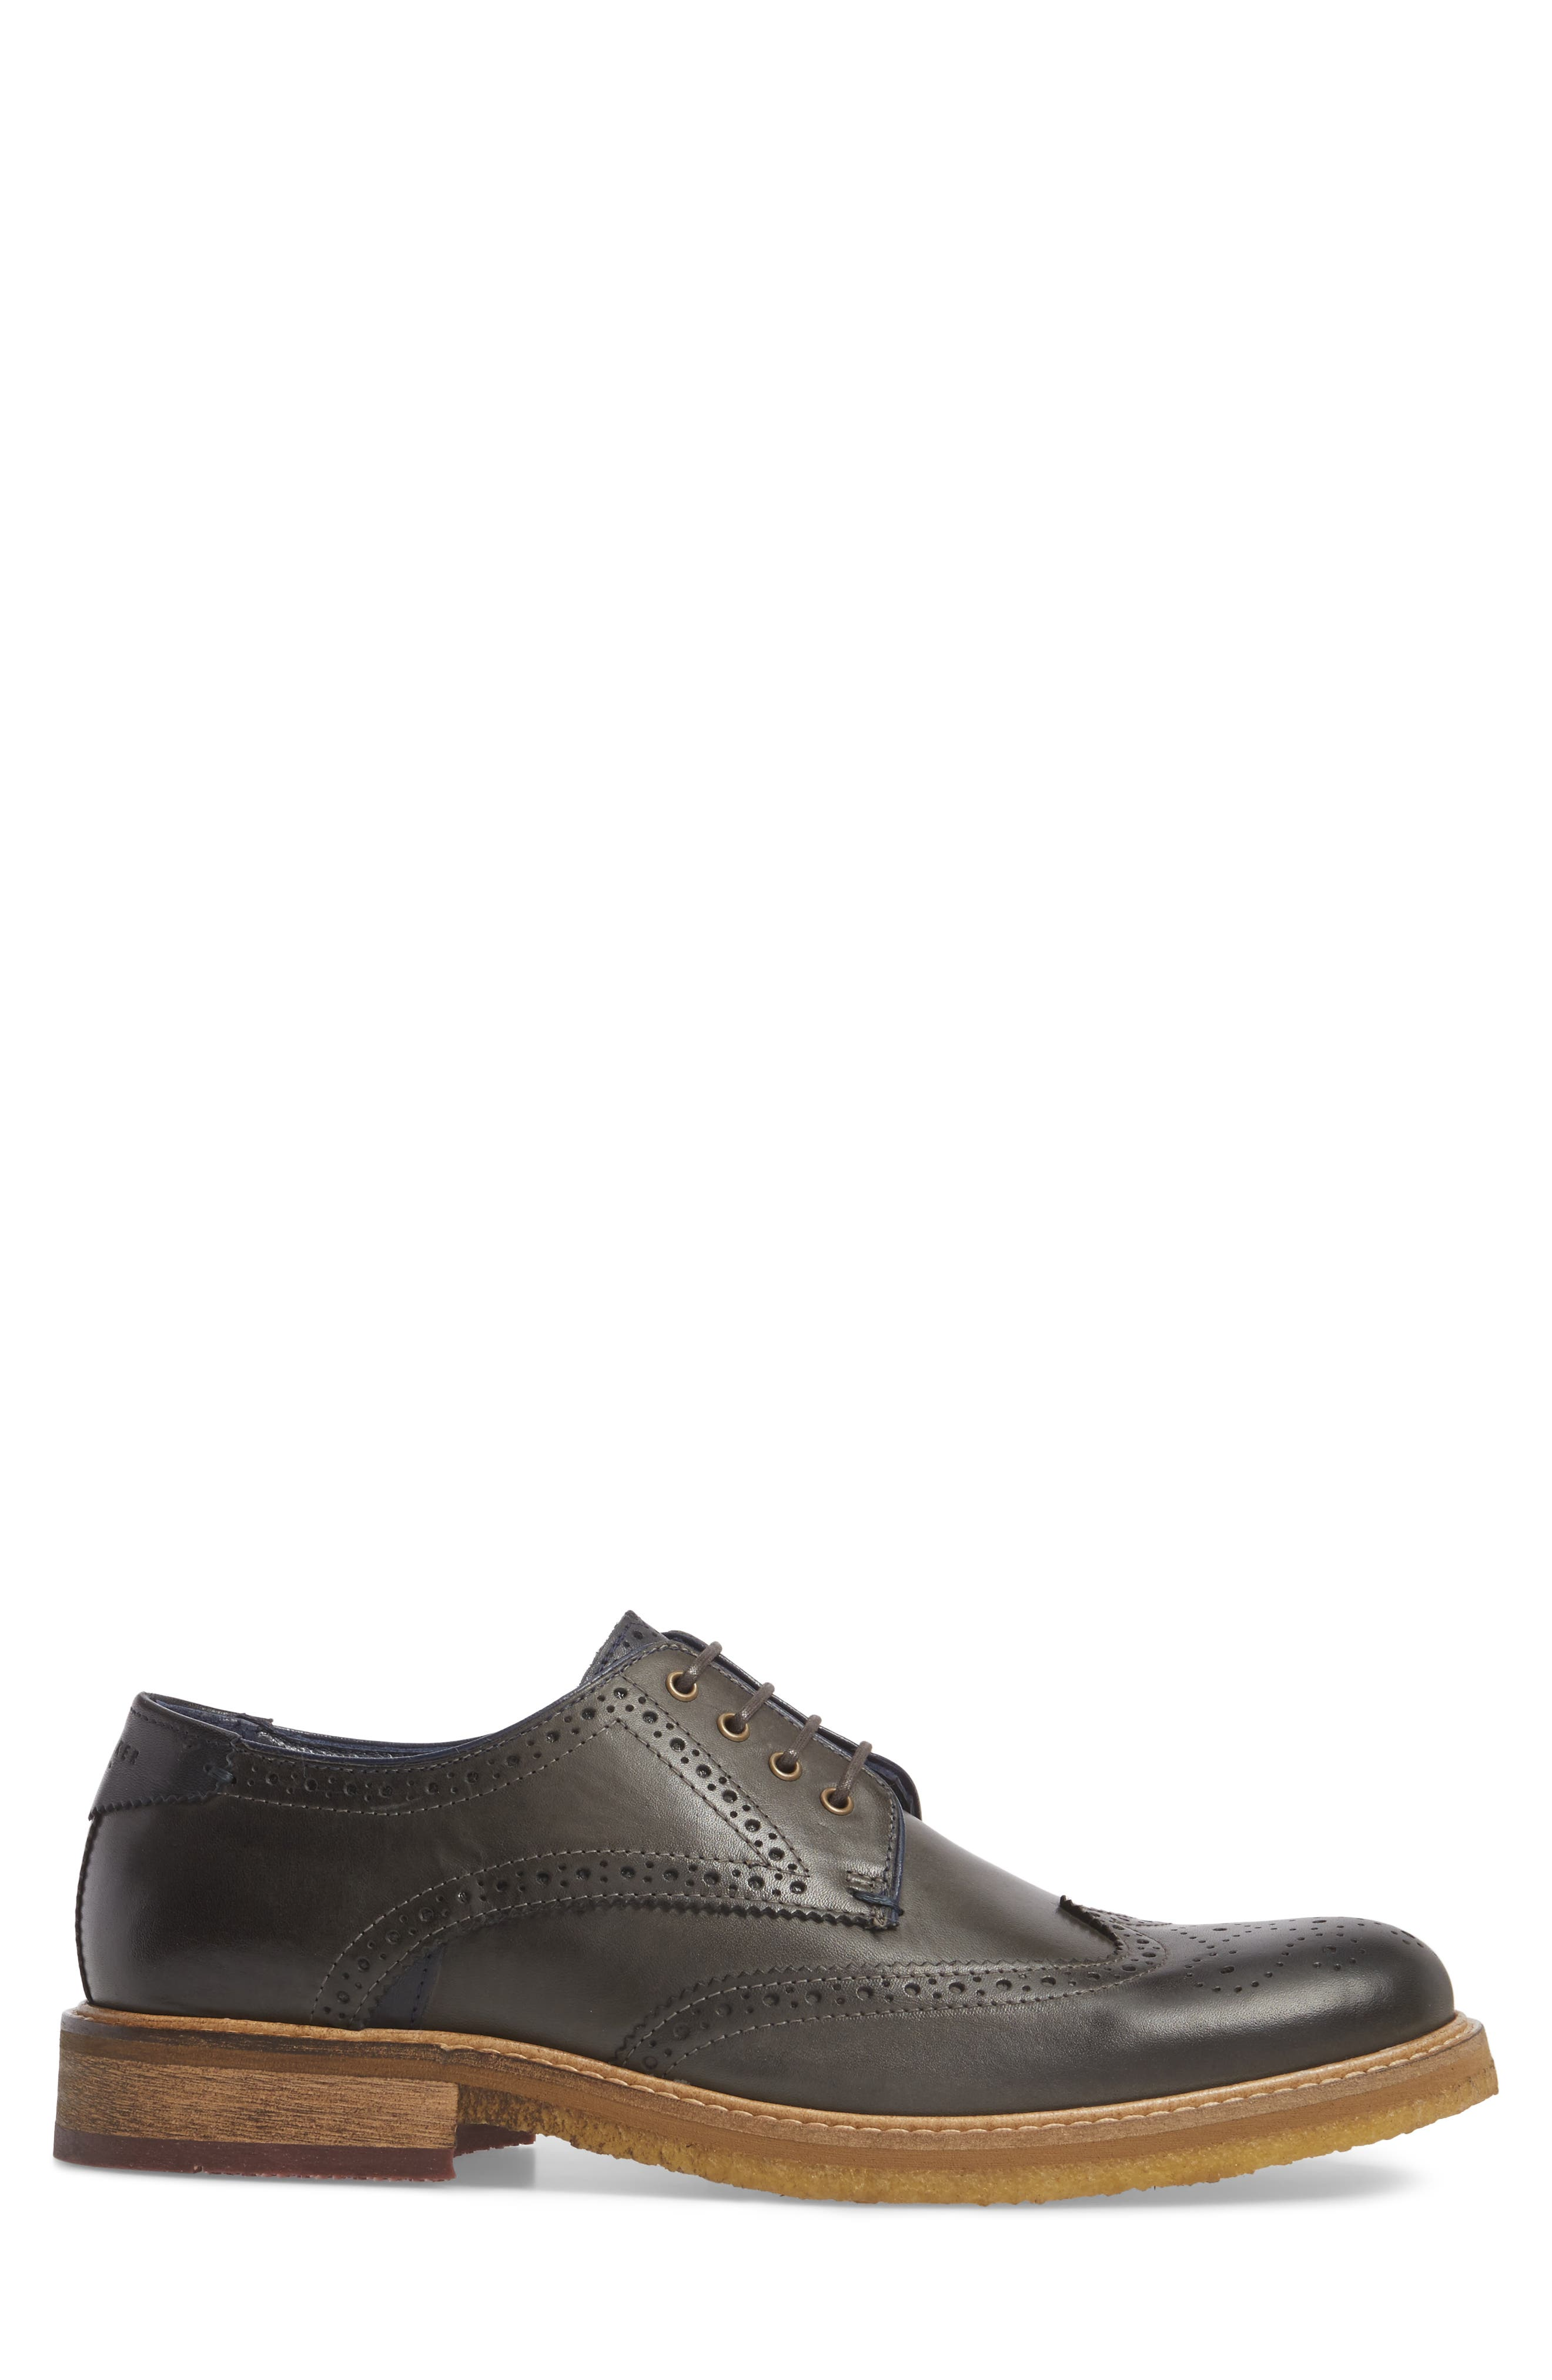 TED BAKER LONDON,                             Prycce Wingtip Derby,                             Alternate thumbnail 3, color,                             031